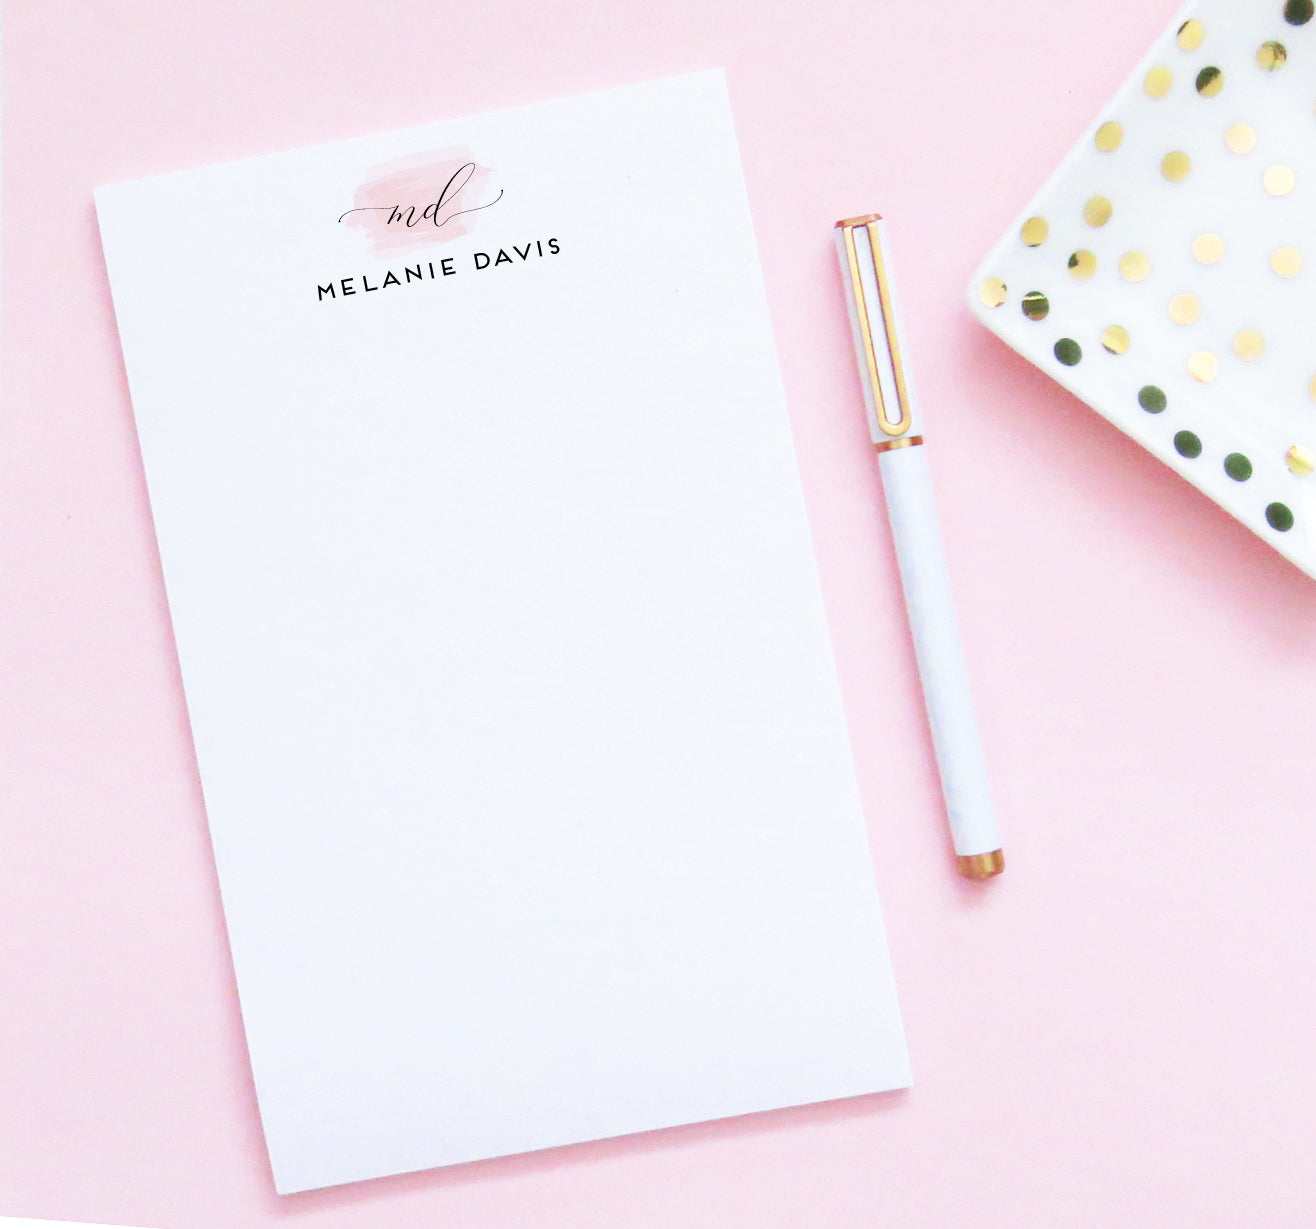 NP139 elegant 2 initial monogram note pads for women pink swatch stationary